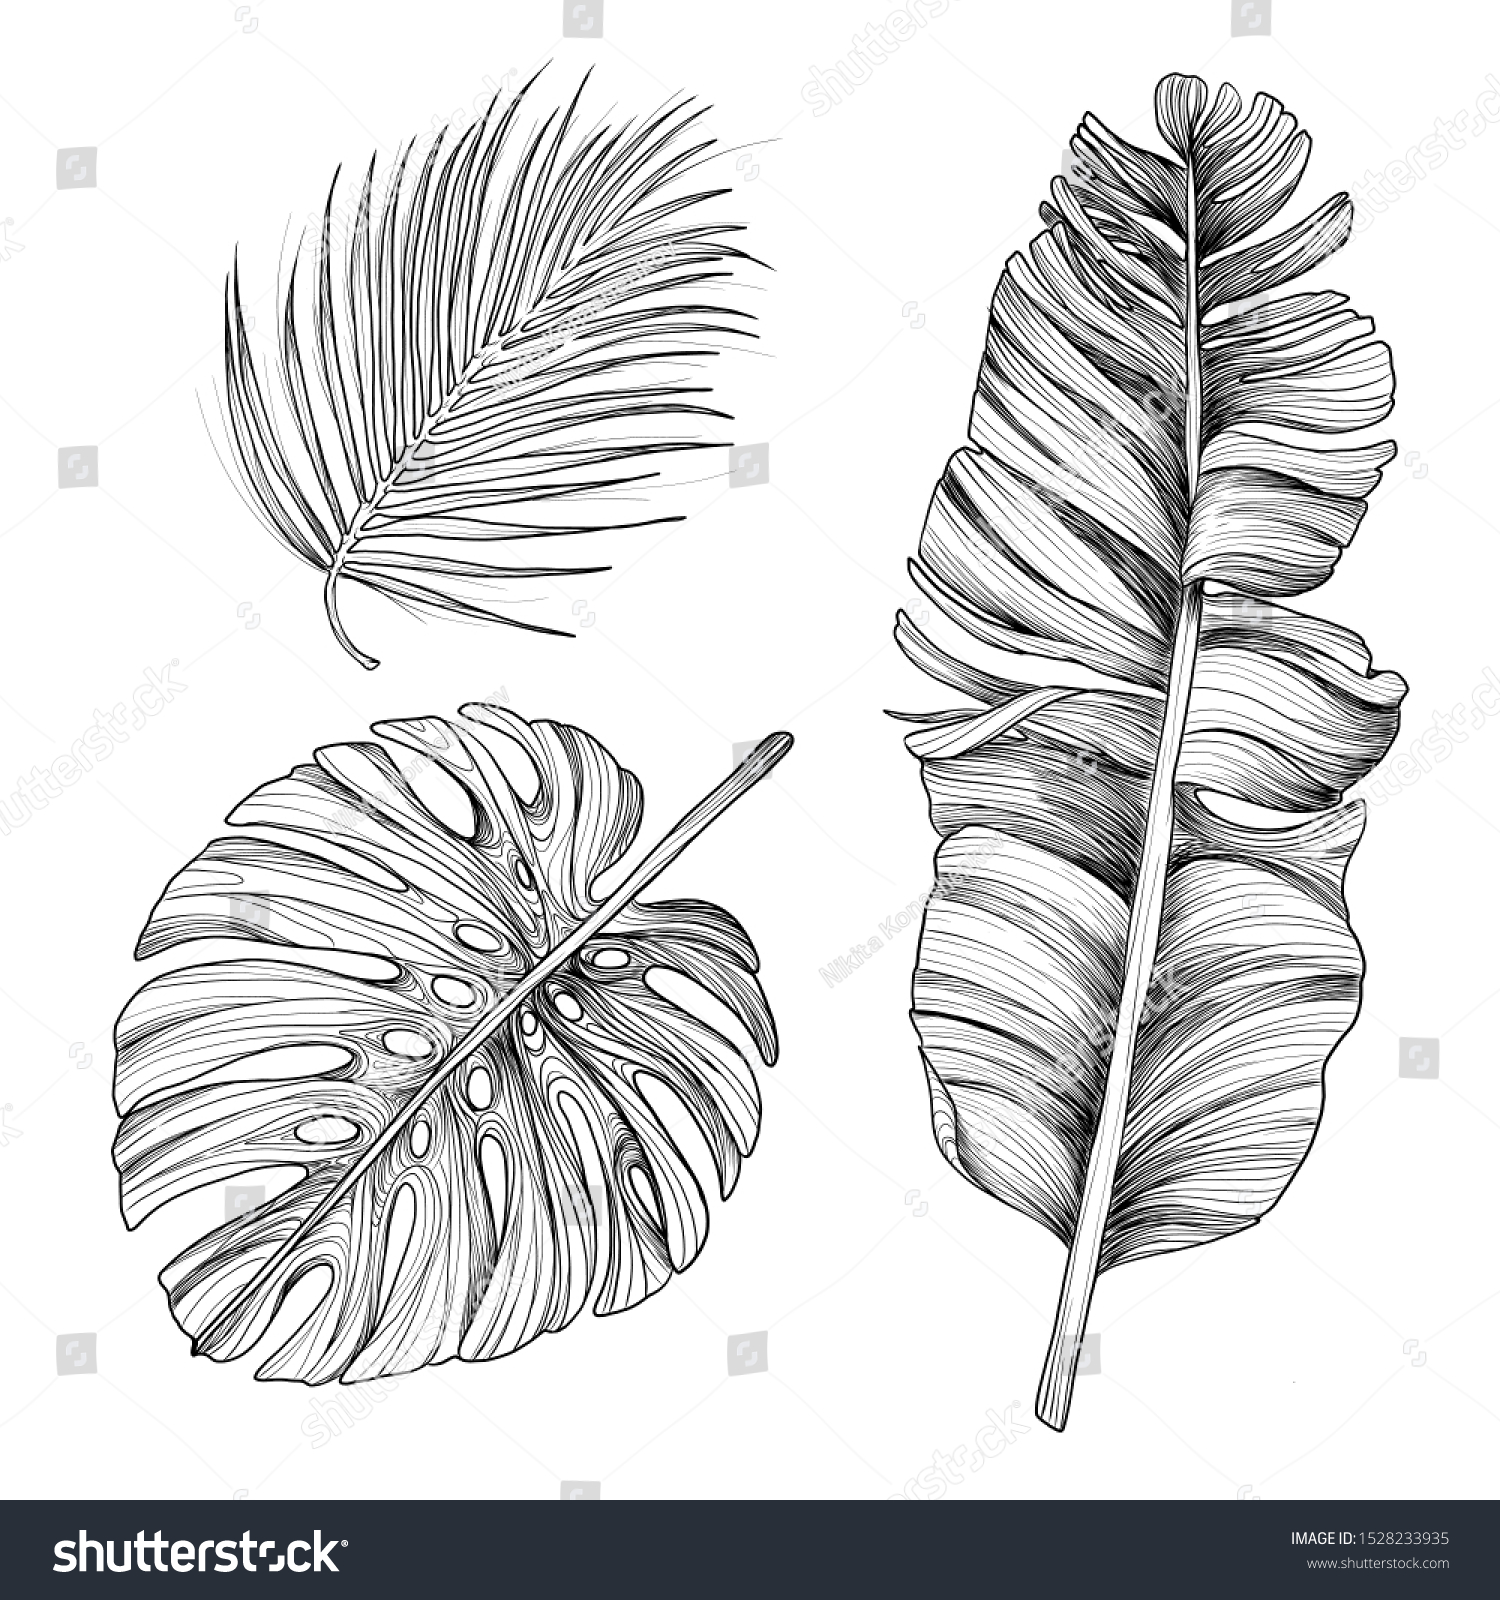 Vector Tropical Palm Leaves Sketch Set Stock Vector Royalty Free 1528233935 Palm beach tree leaves jungle botanical. https www shutterstock com image vector vector tropical palm leaves sketch set 1528233935